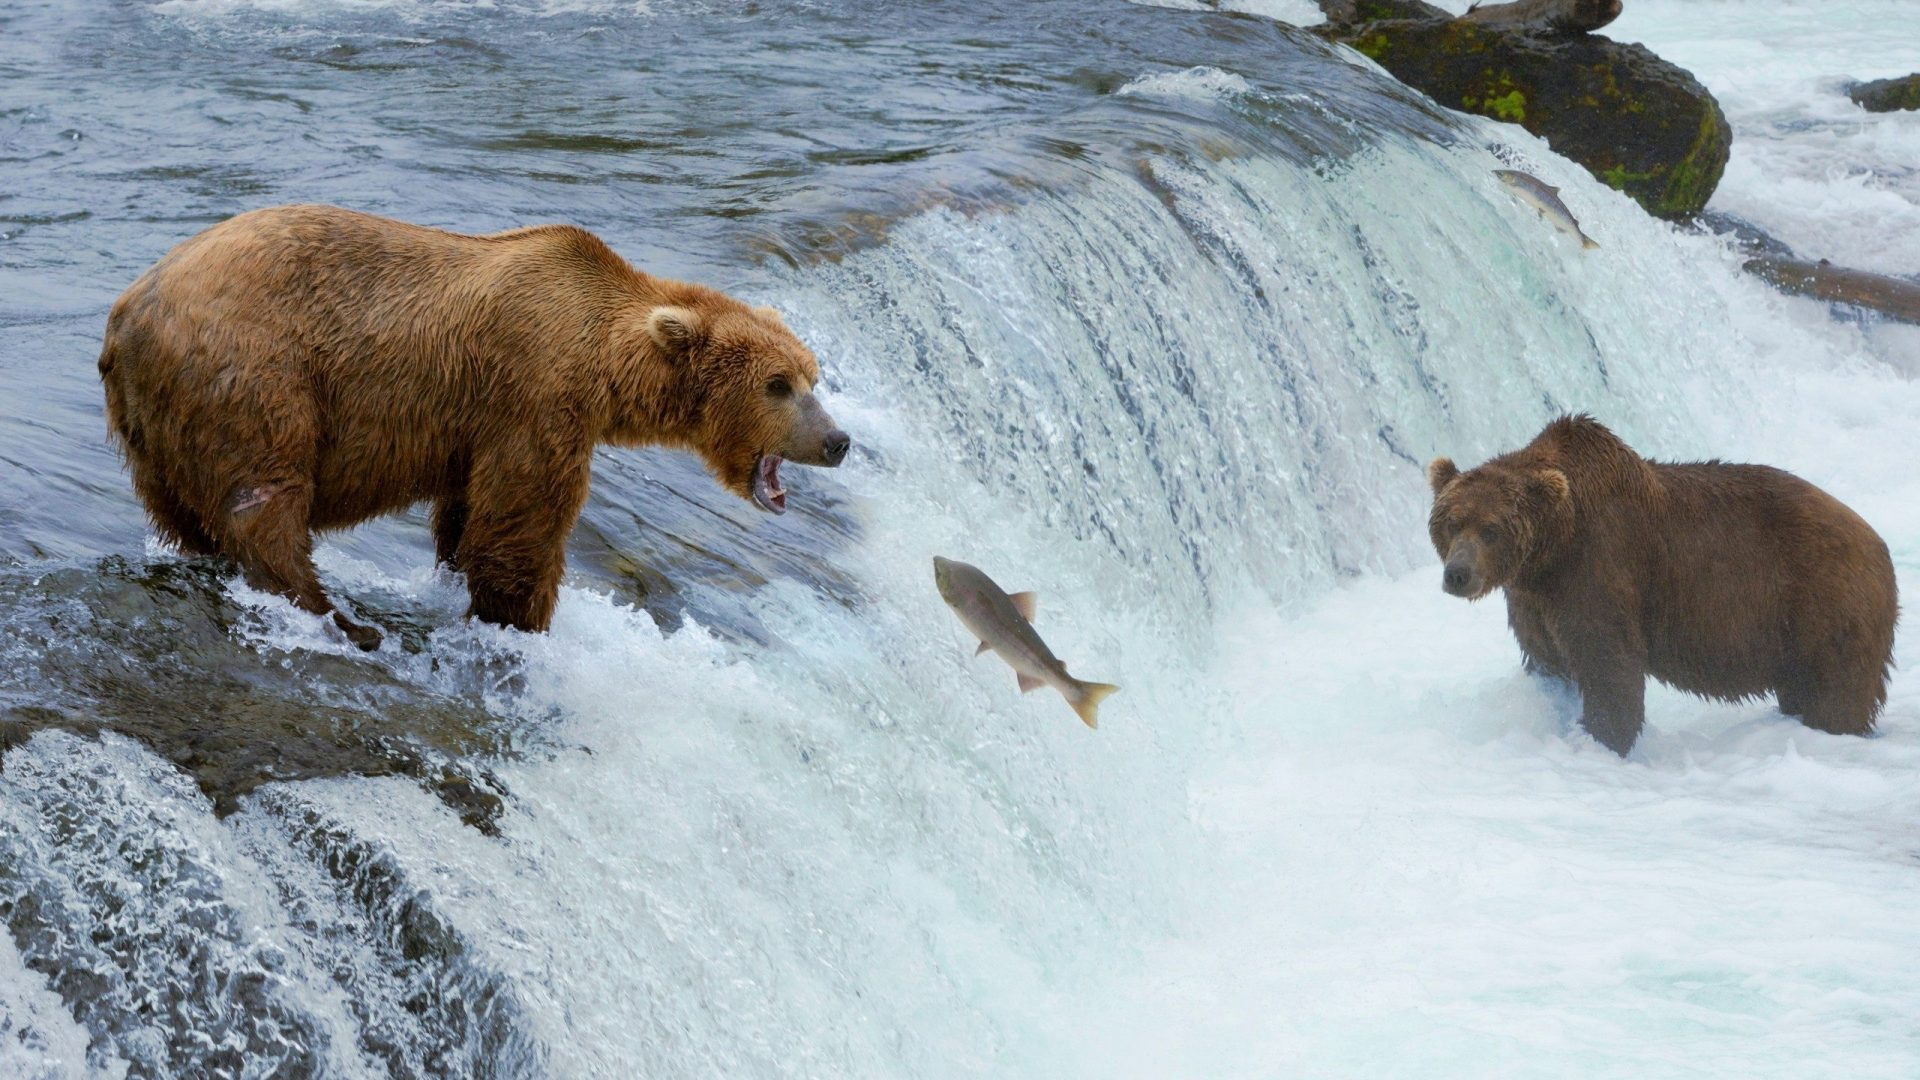 Bear-Hunting-Fish-1920-x-1080-Need-iPhone-S-Plus-Background-for-IPhoneSPlus-Fo-wallpaper-wp3402968